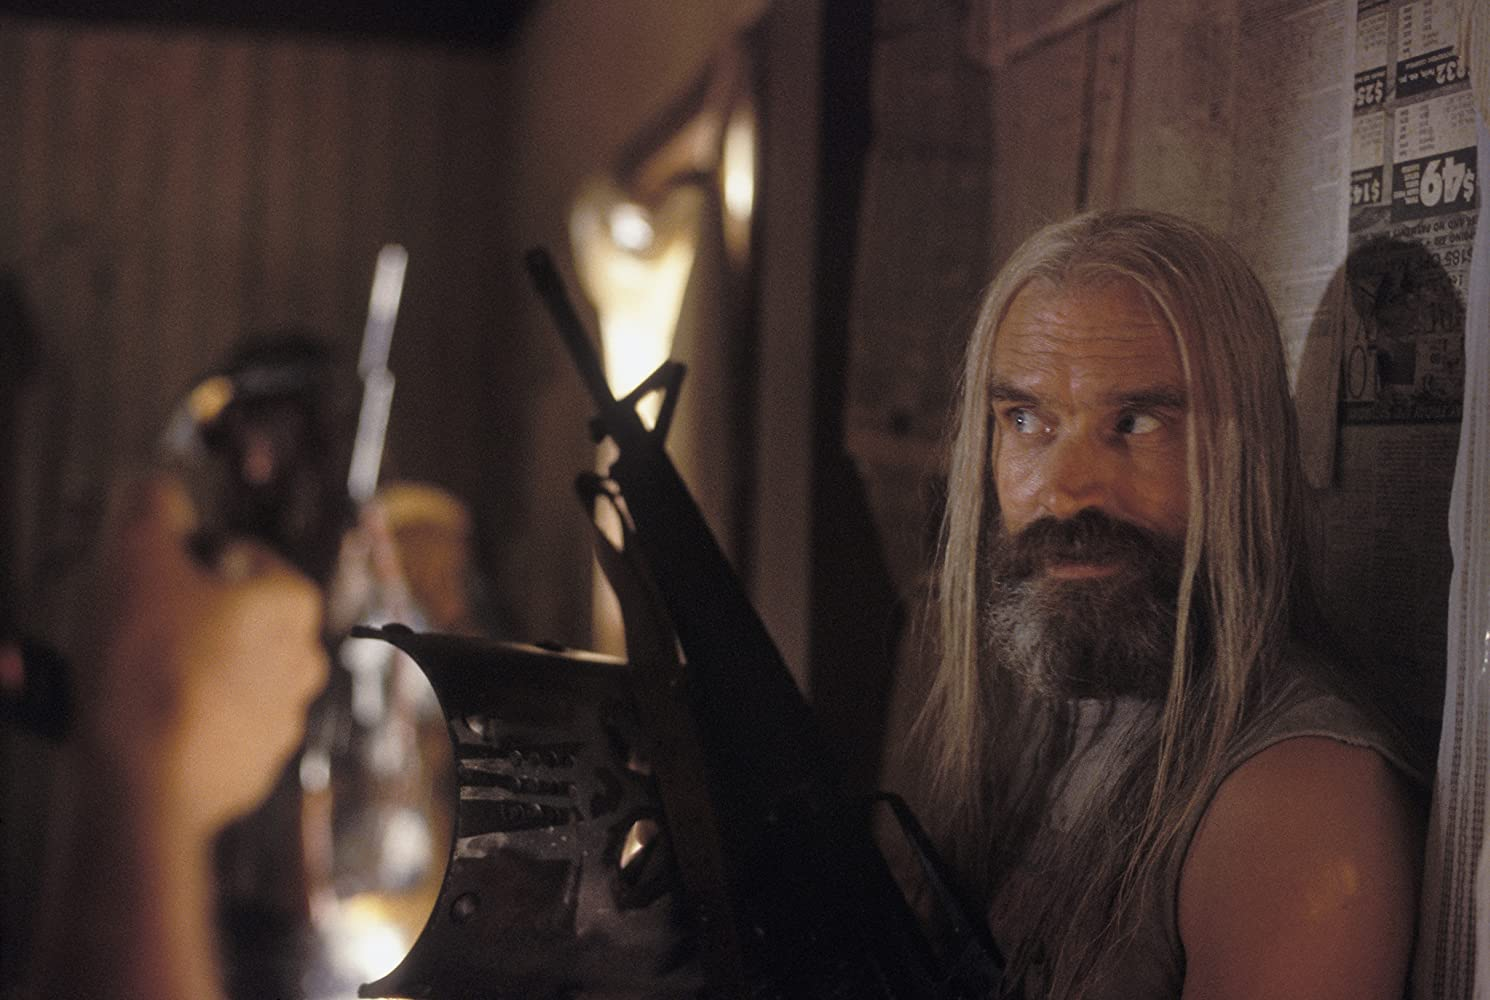 Bill Moseley in The Devil's Rejects (2005)